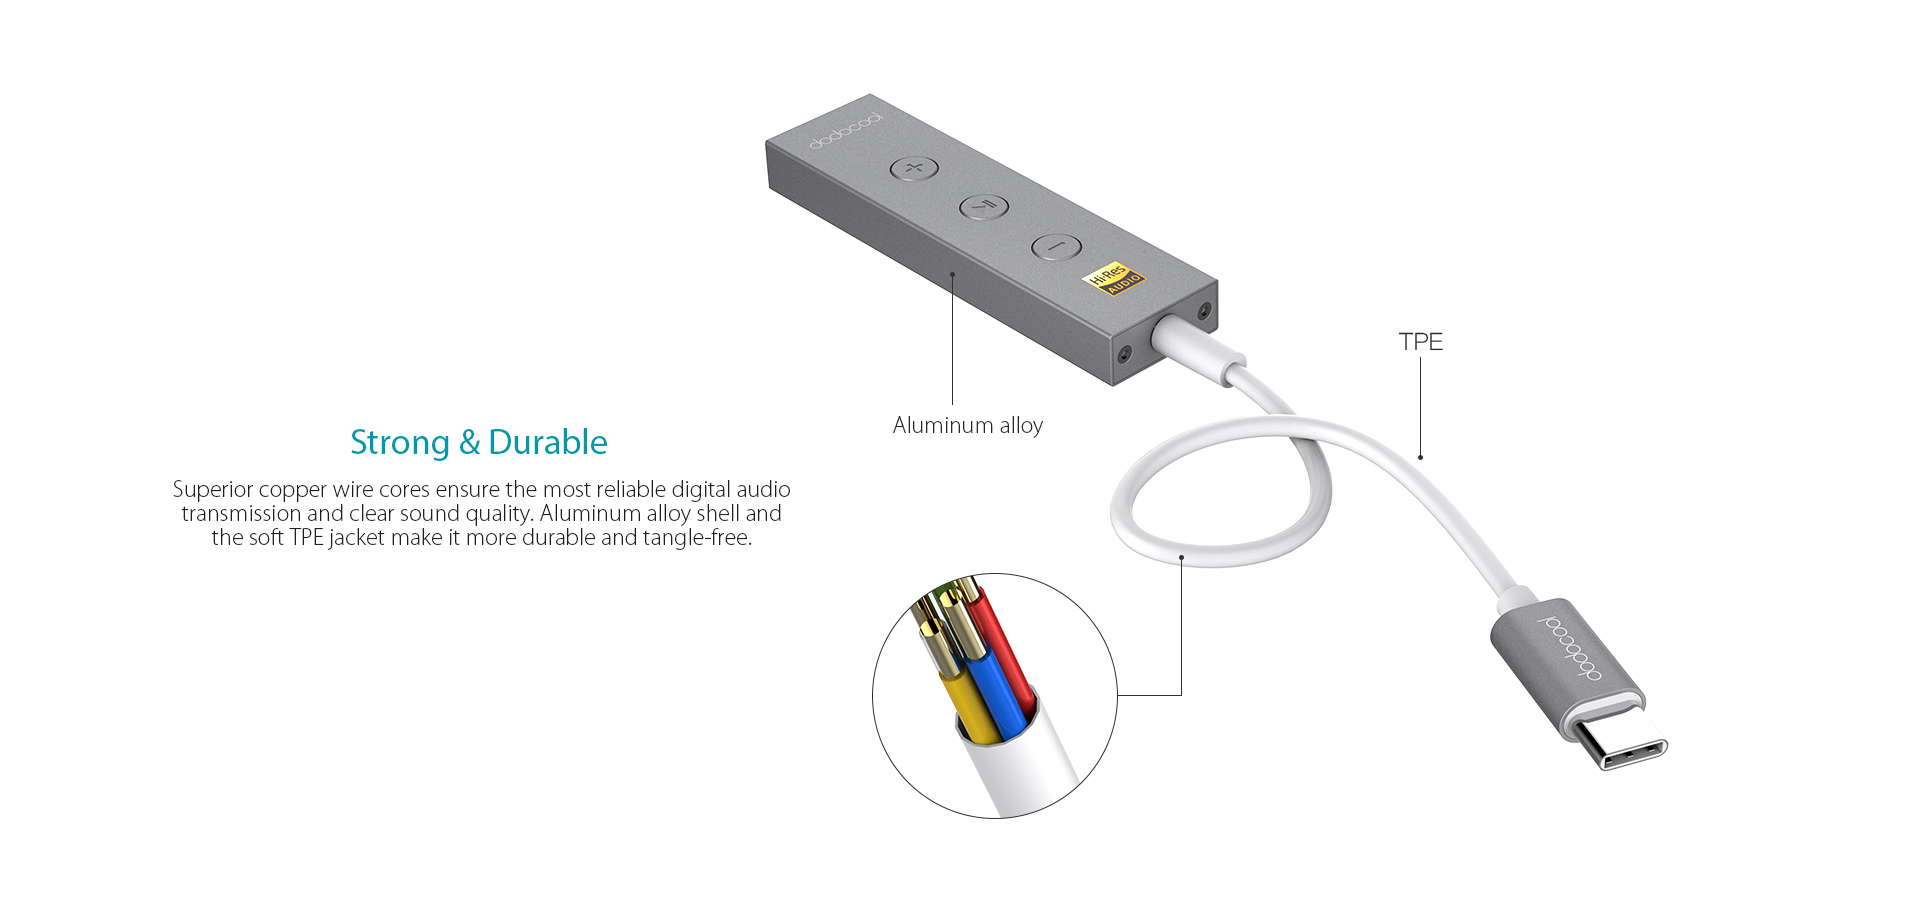 dodocool hi-res audio certified usb-c to 3 5mm audio jack adapter complies  with high-resolution audio standard  it offers a lossless conversion for